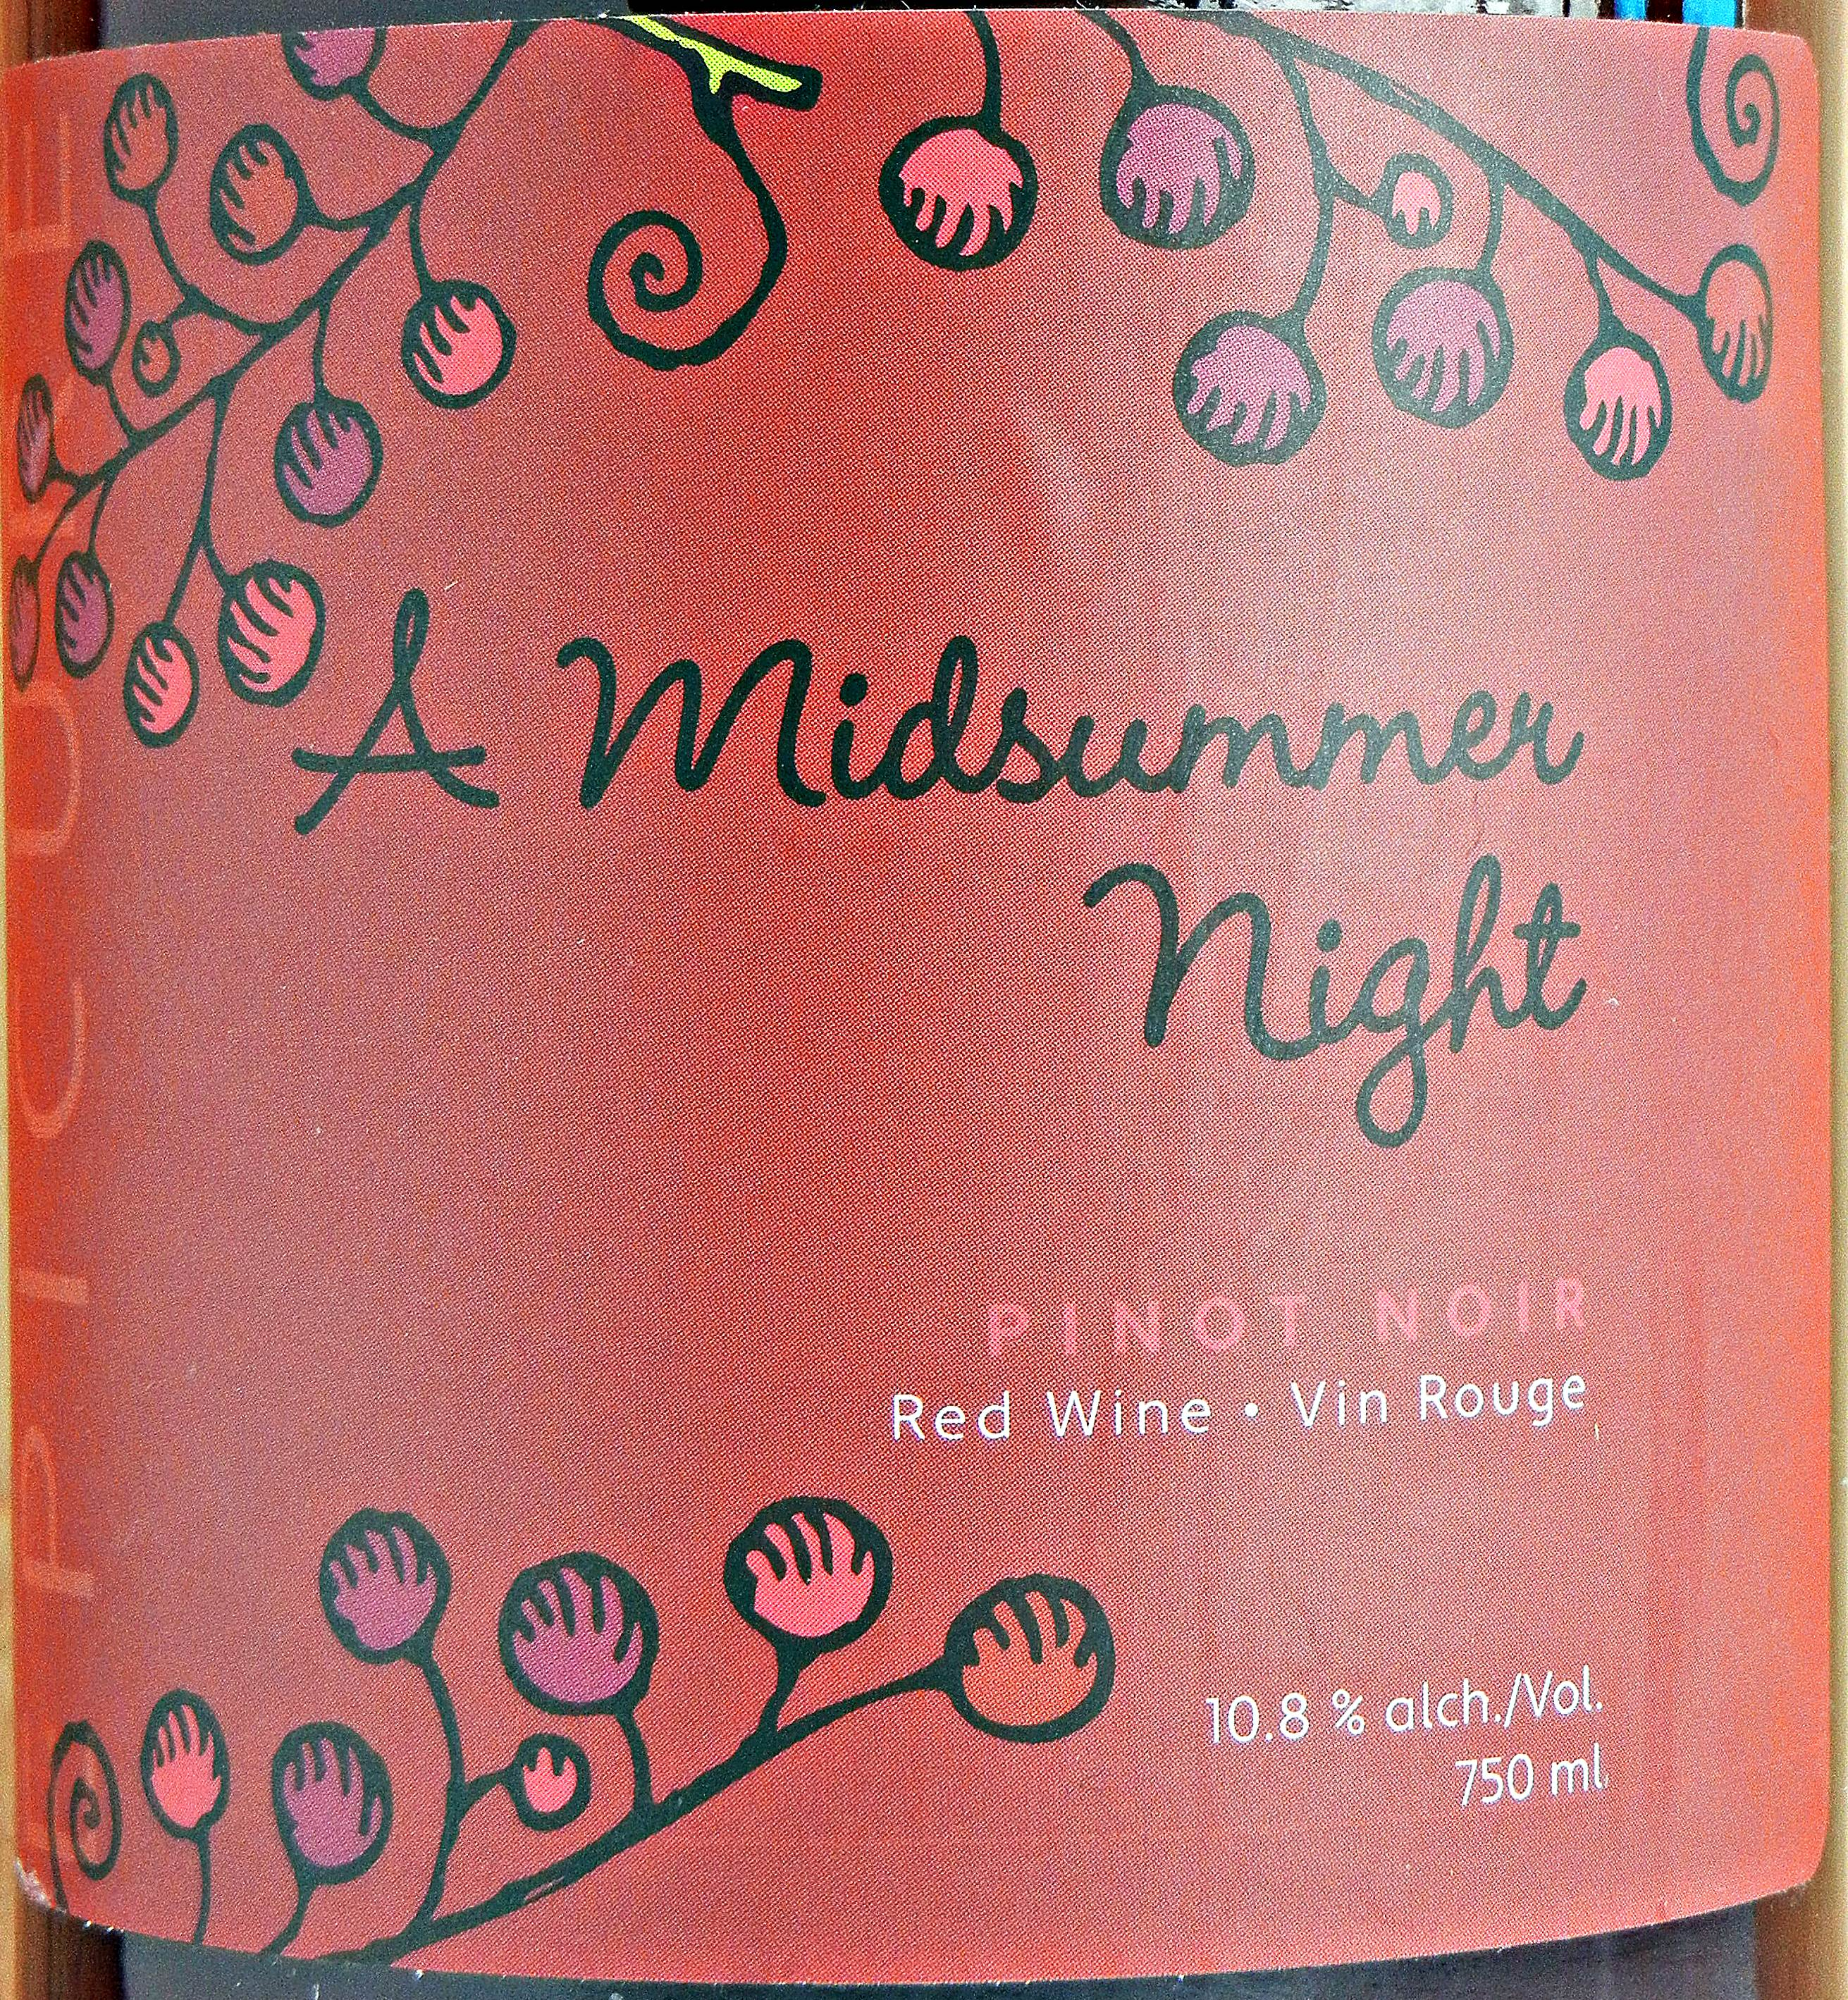 Domaine Rochette A Midsummer Night Pinot Noir 2009 Label - BC Pinot Noir Tasting Review 26